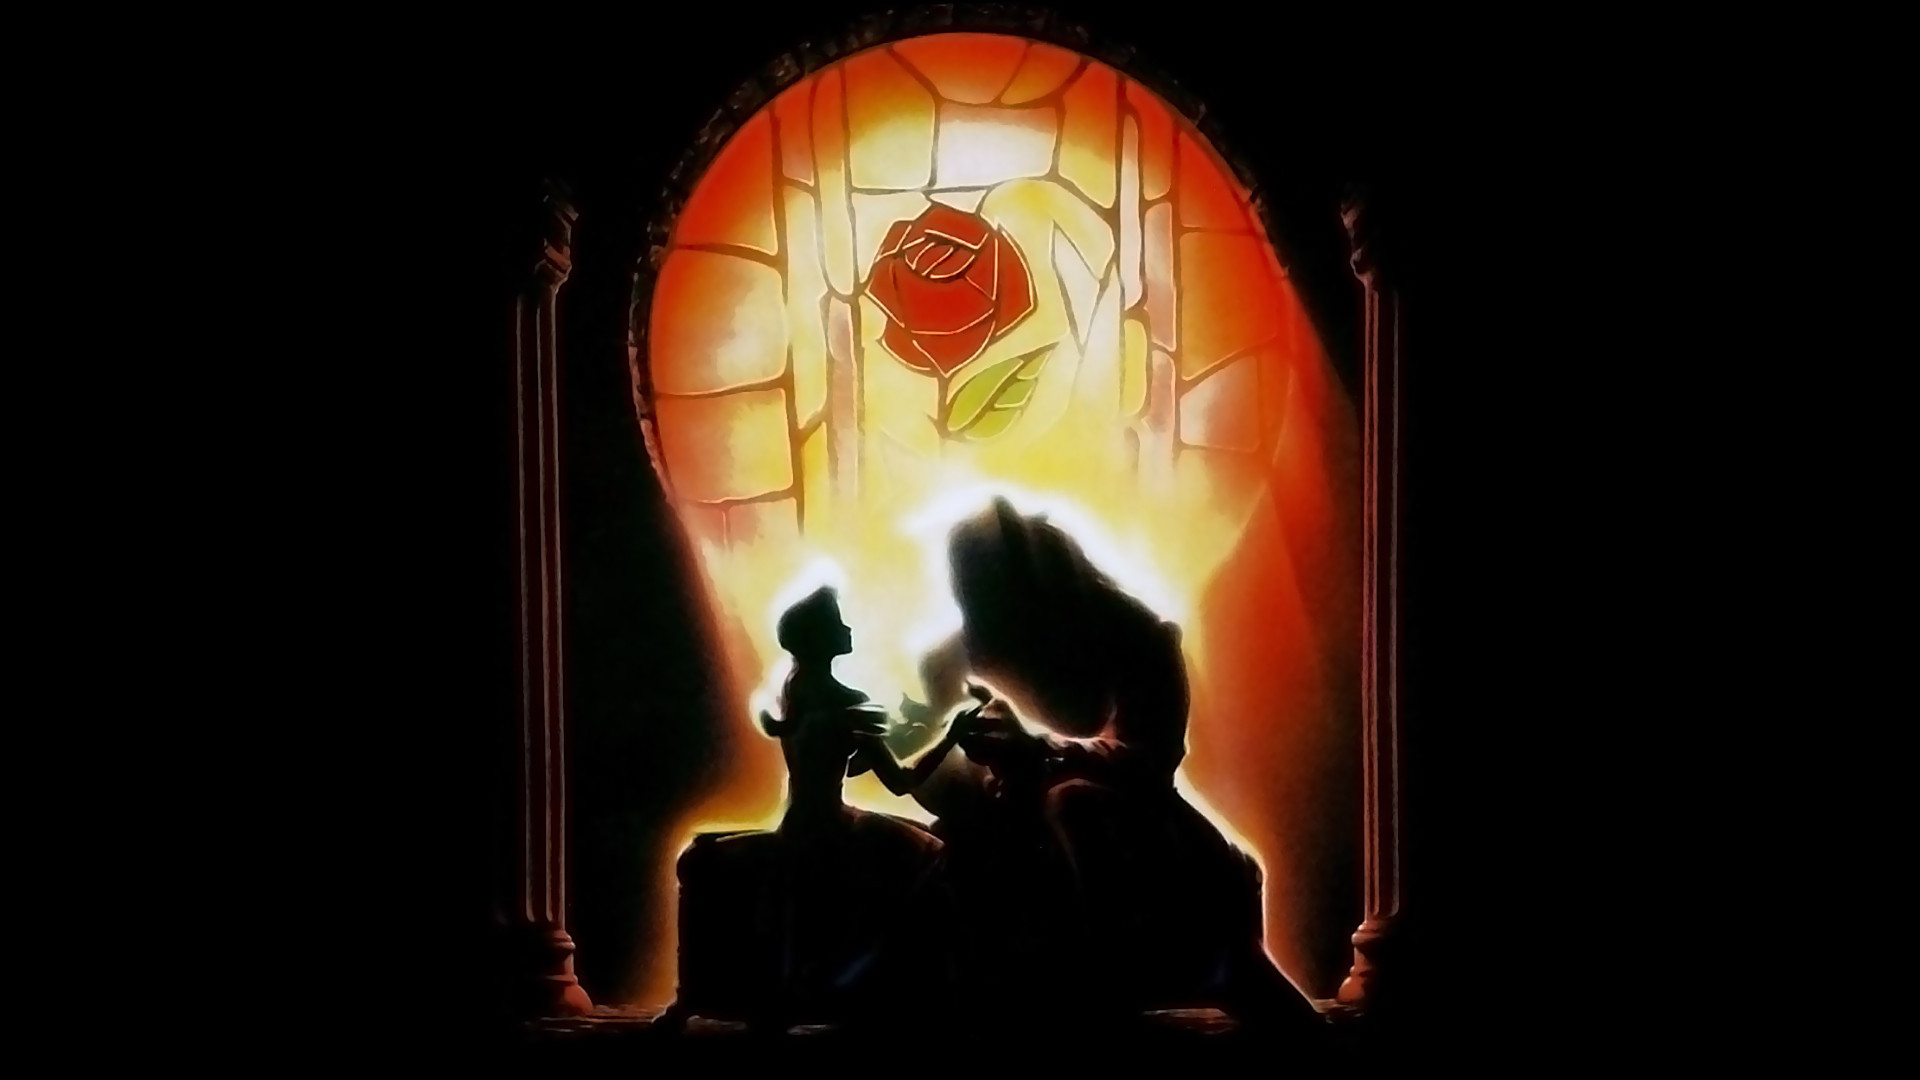 71 Beauty And The Beast Wallpaper On Wallpapersafari